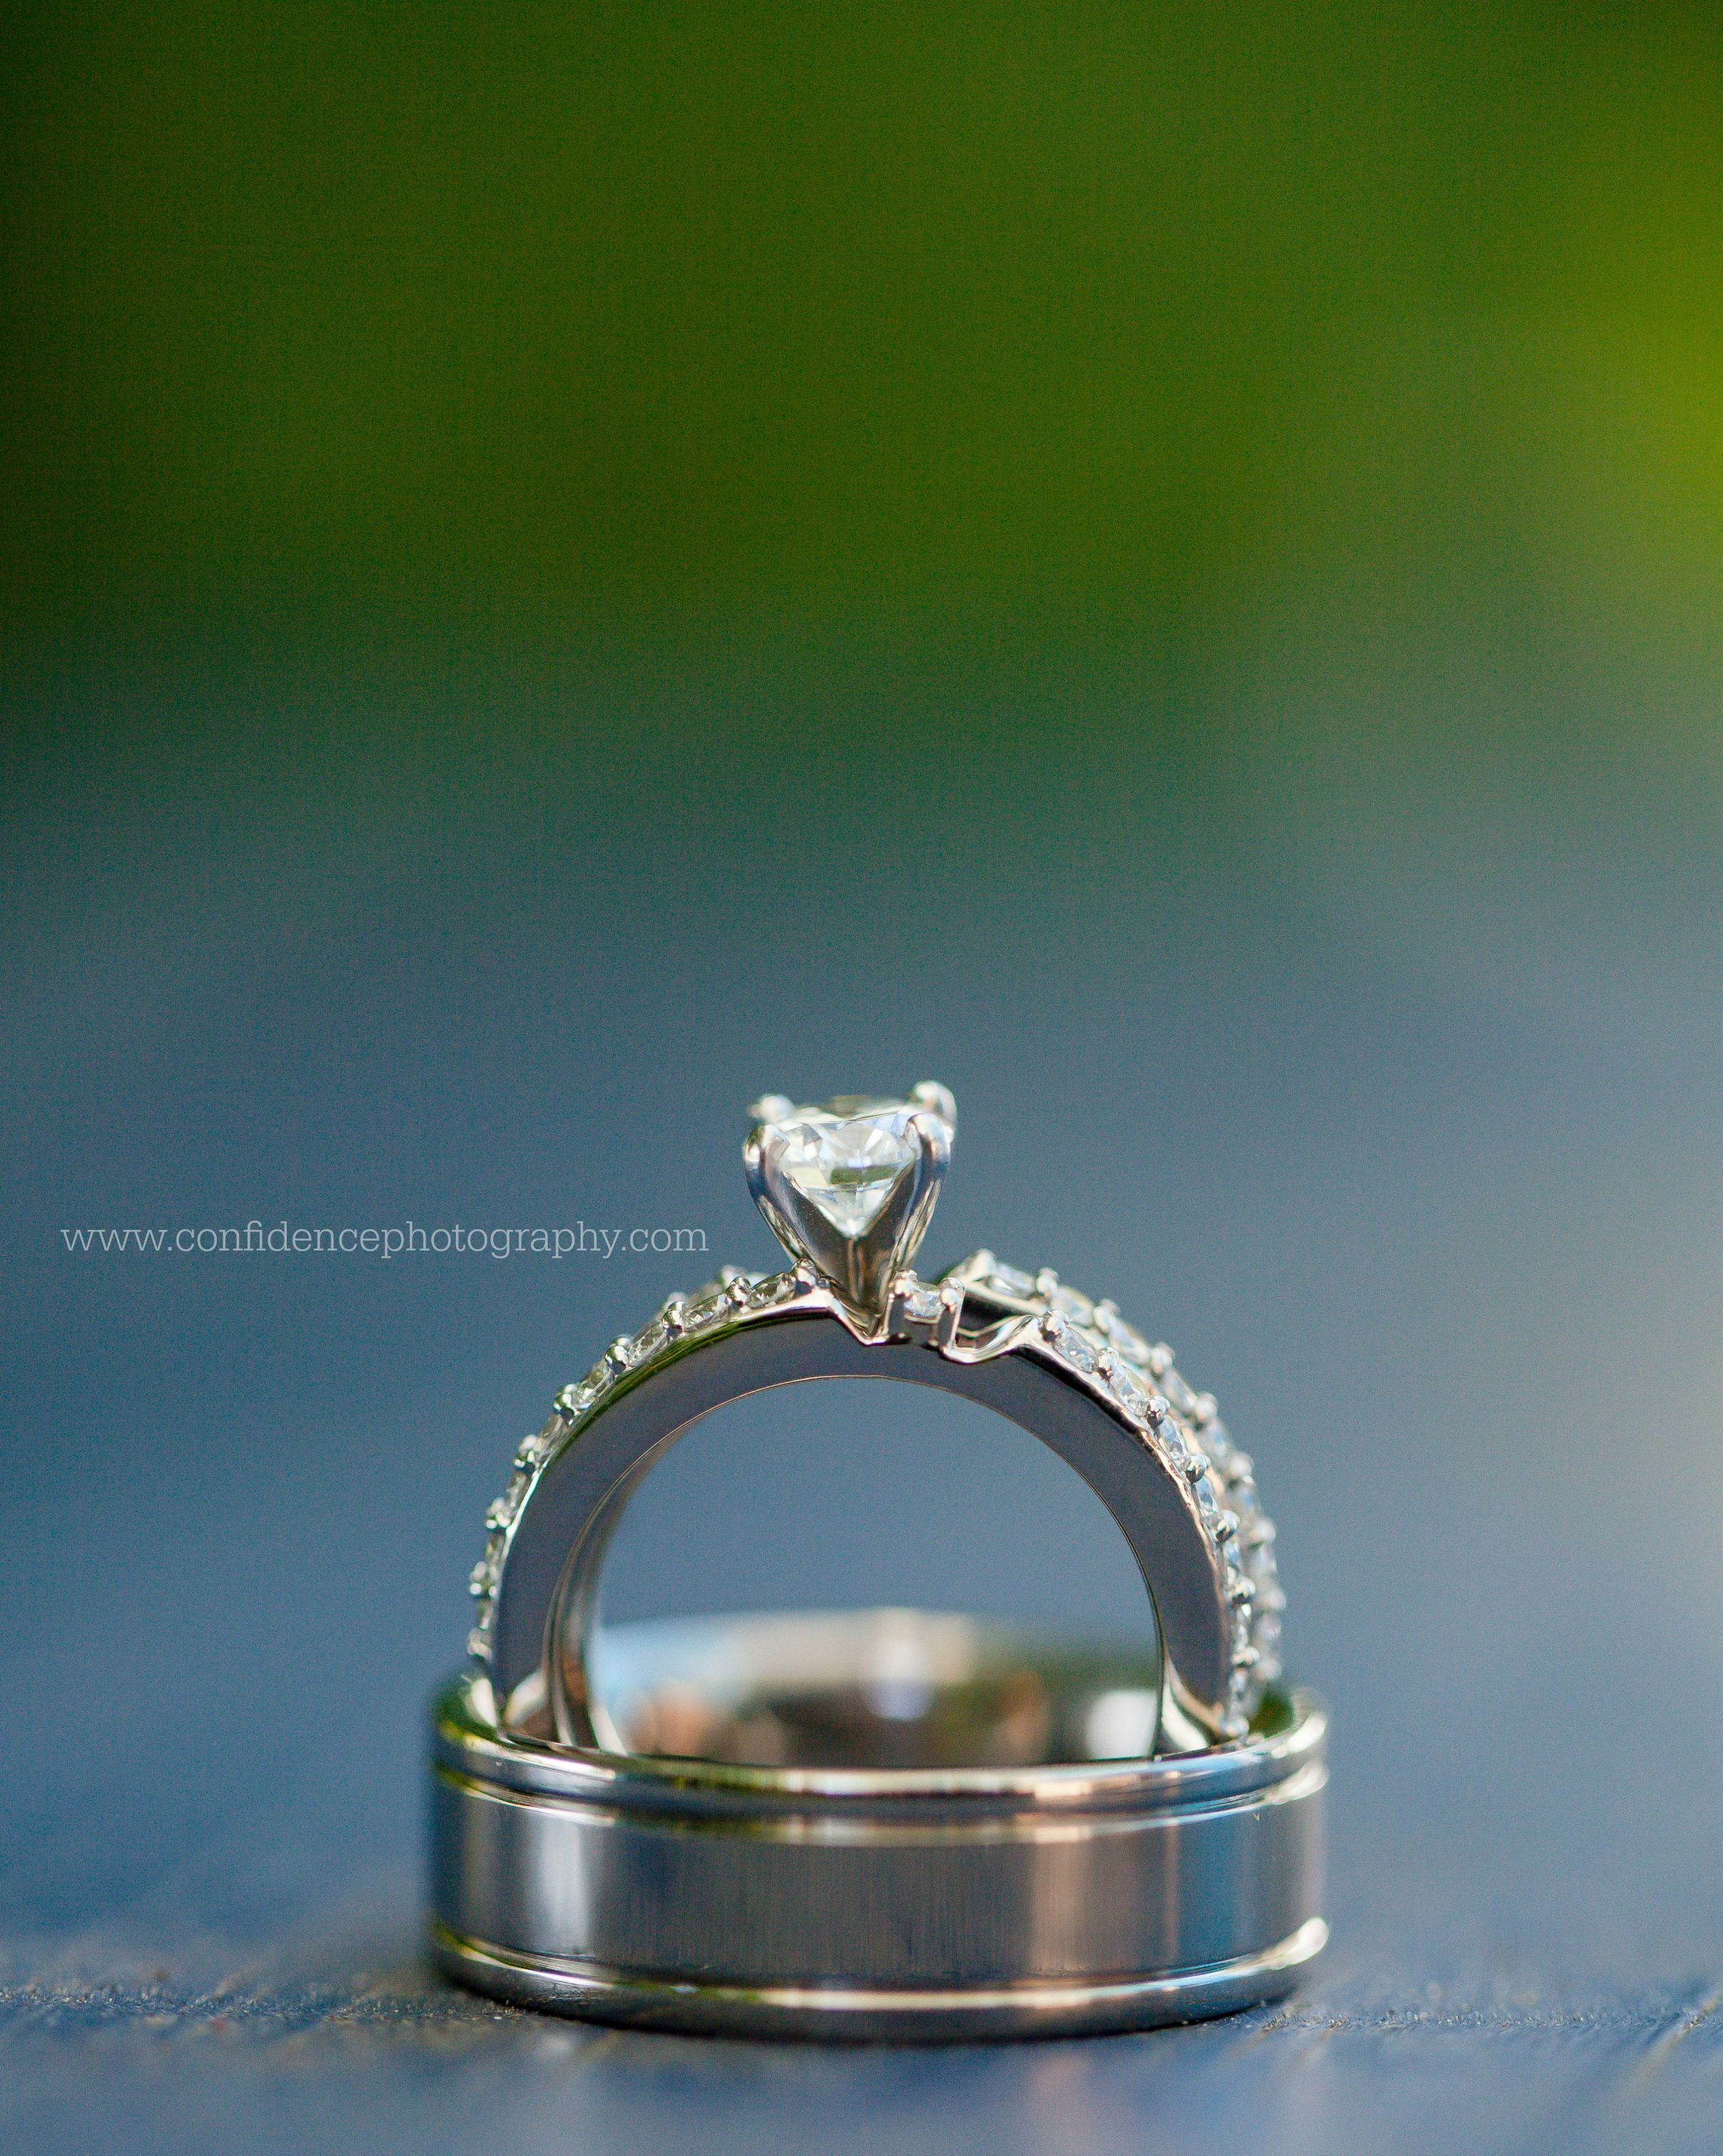 Ring Shot Creative Ring Shot Wedding Rings Confidence Photography